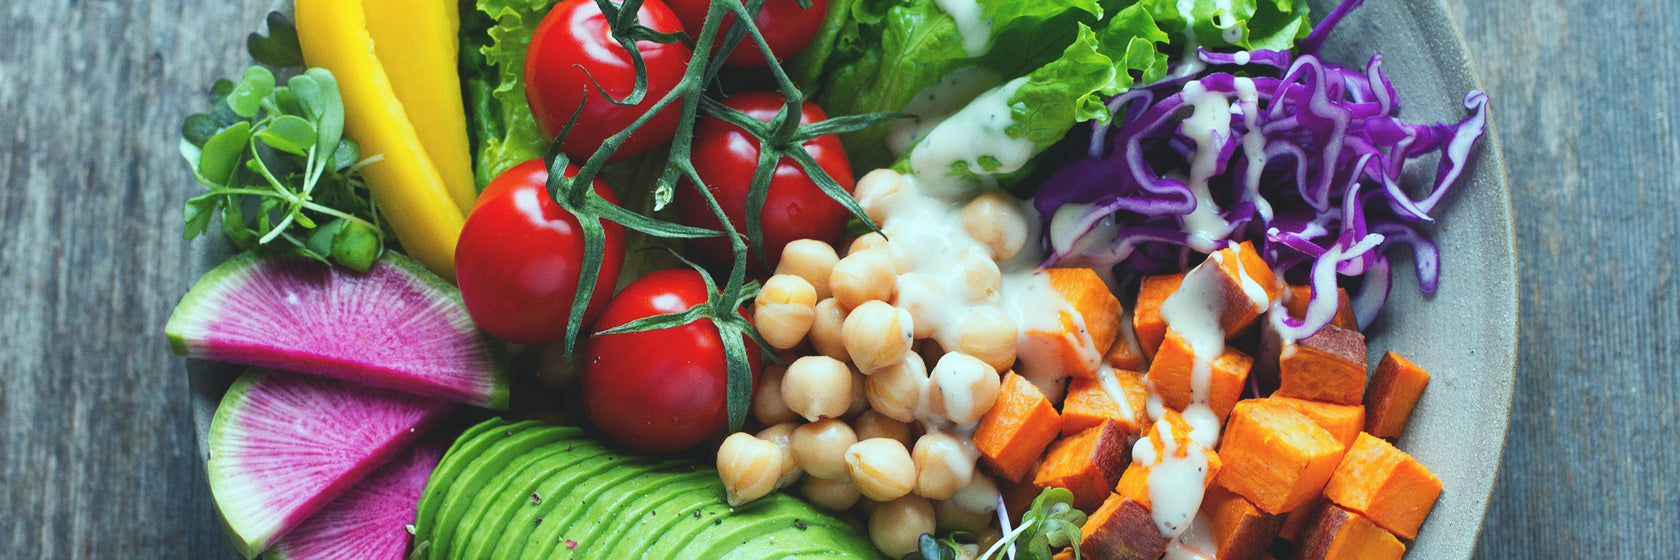 The Case for Plant-Based Diets: Health